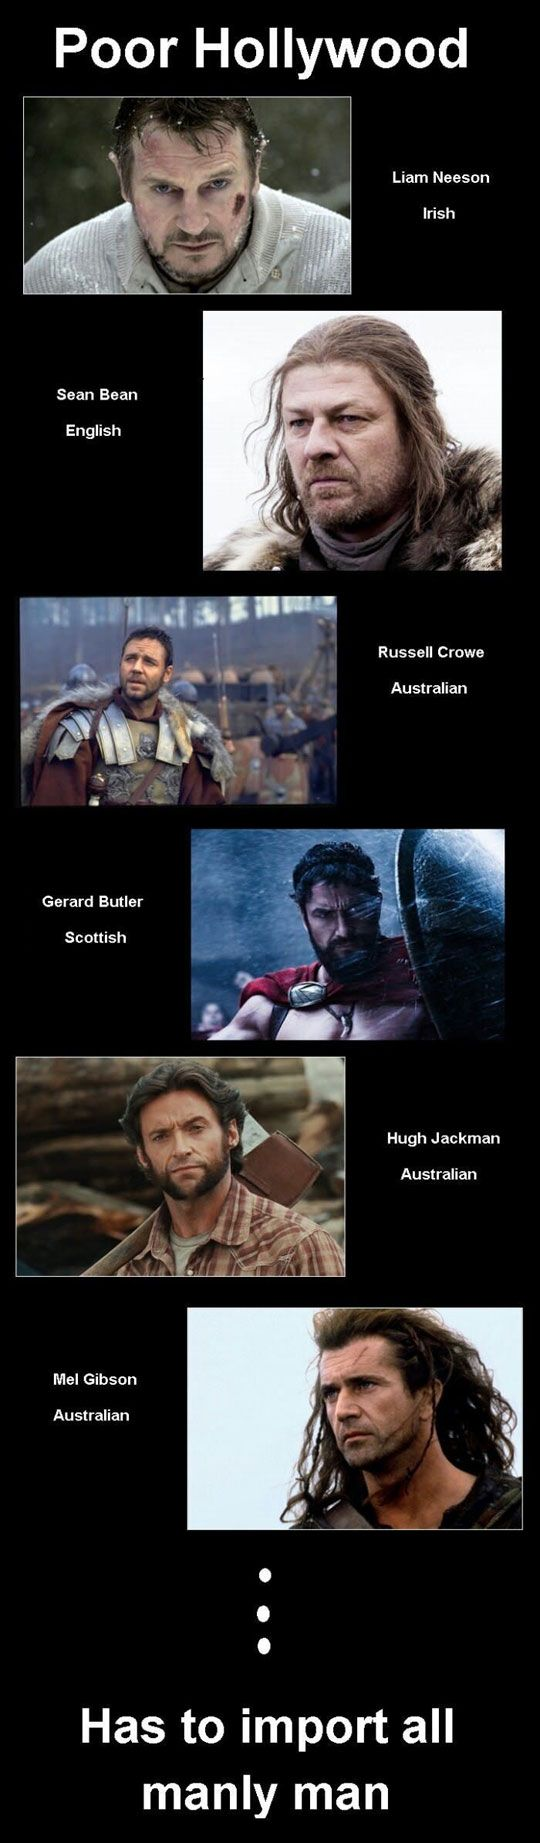 Yes, John Barrowman belongs on this list too.  Hollywood has completely sold out to the lowest standards.  Crap movies are far more common than watchable ones.